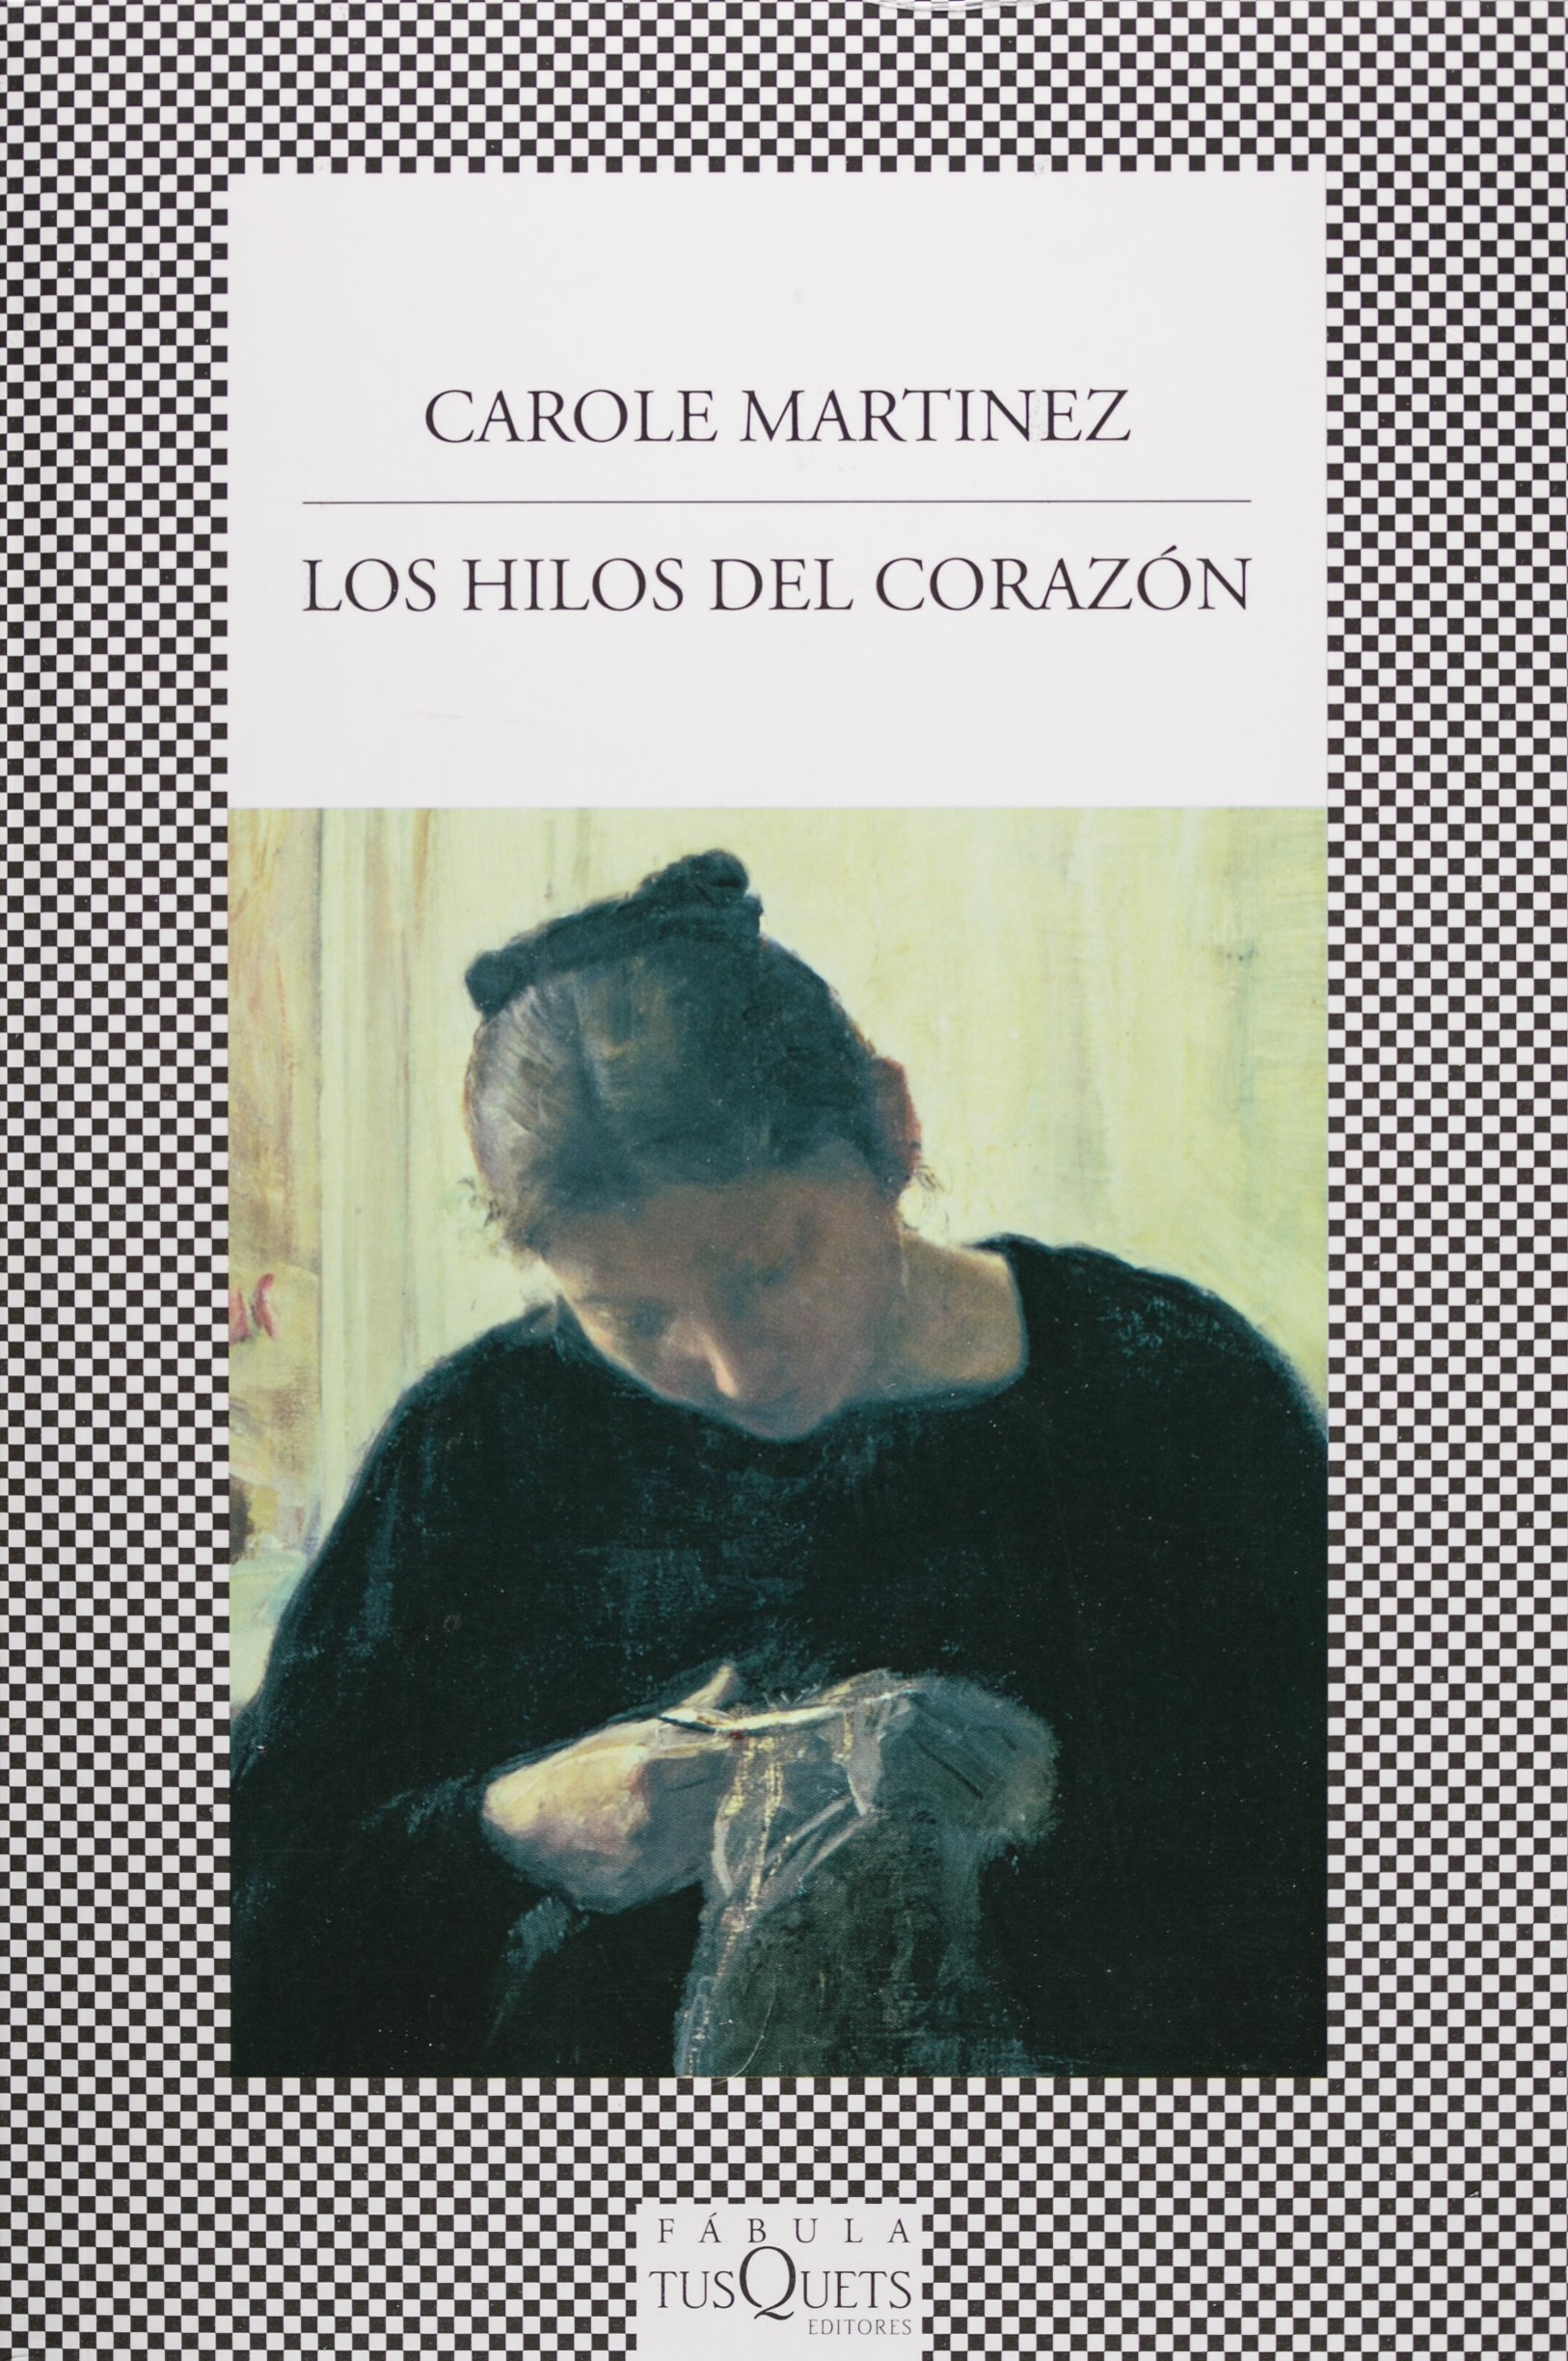 Los hilos del corazon (Spanish Edition): Carole Martinez: 9786074215120: Amazon.com: Books